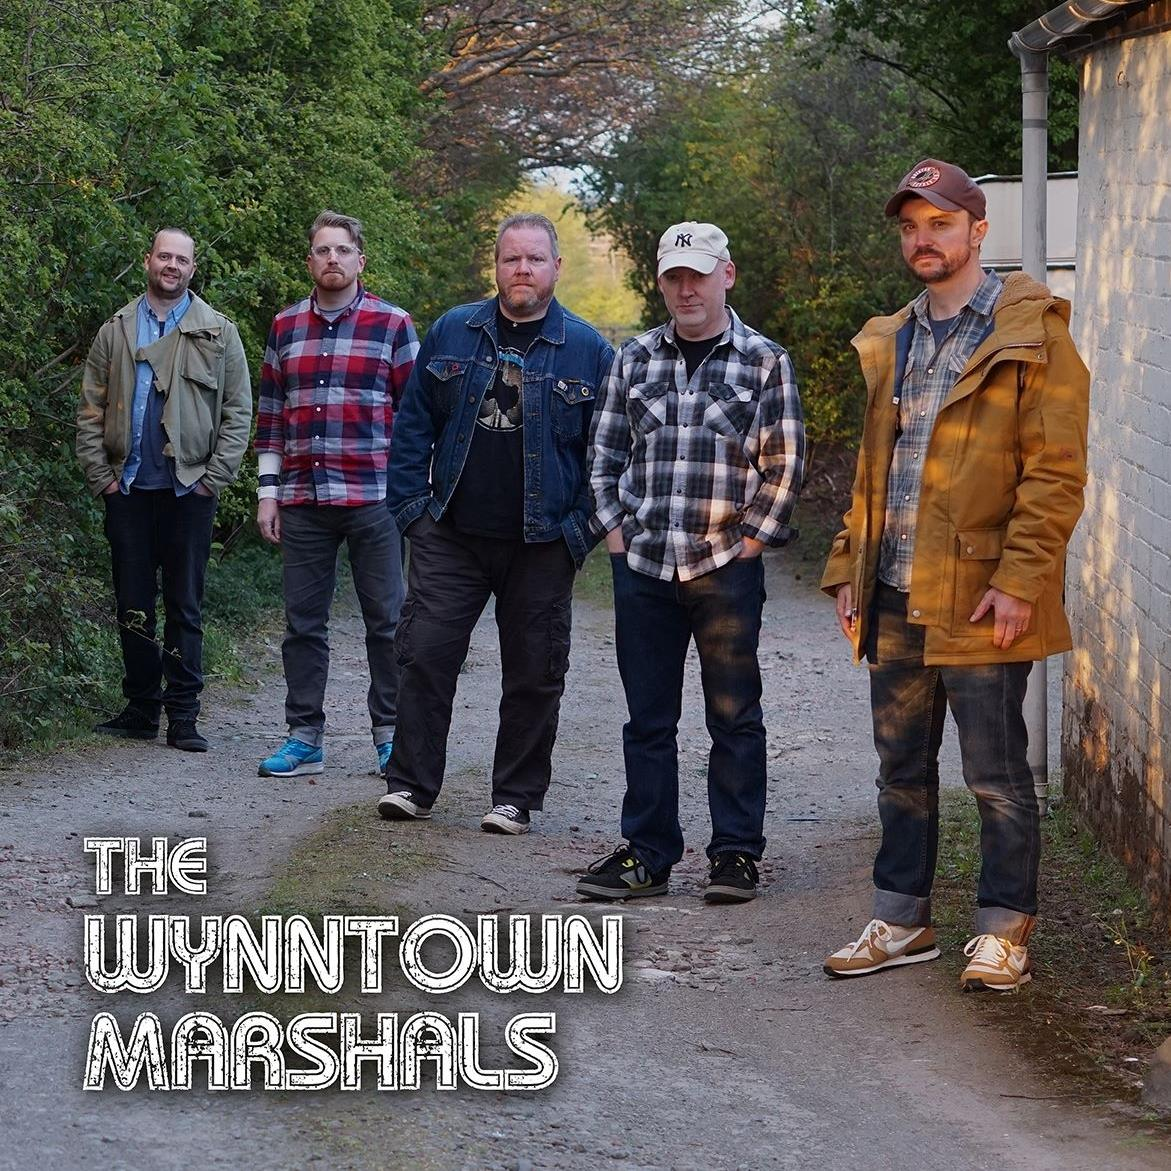 The Wynntown Marshals